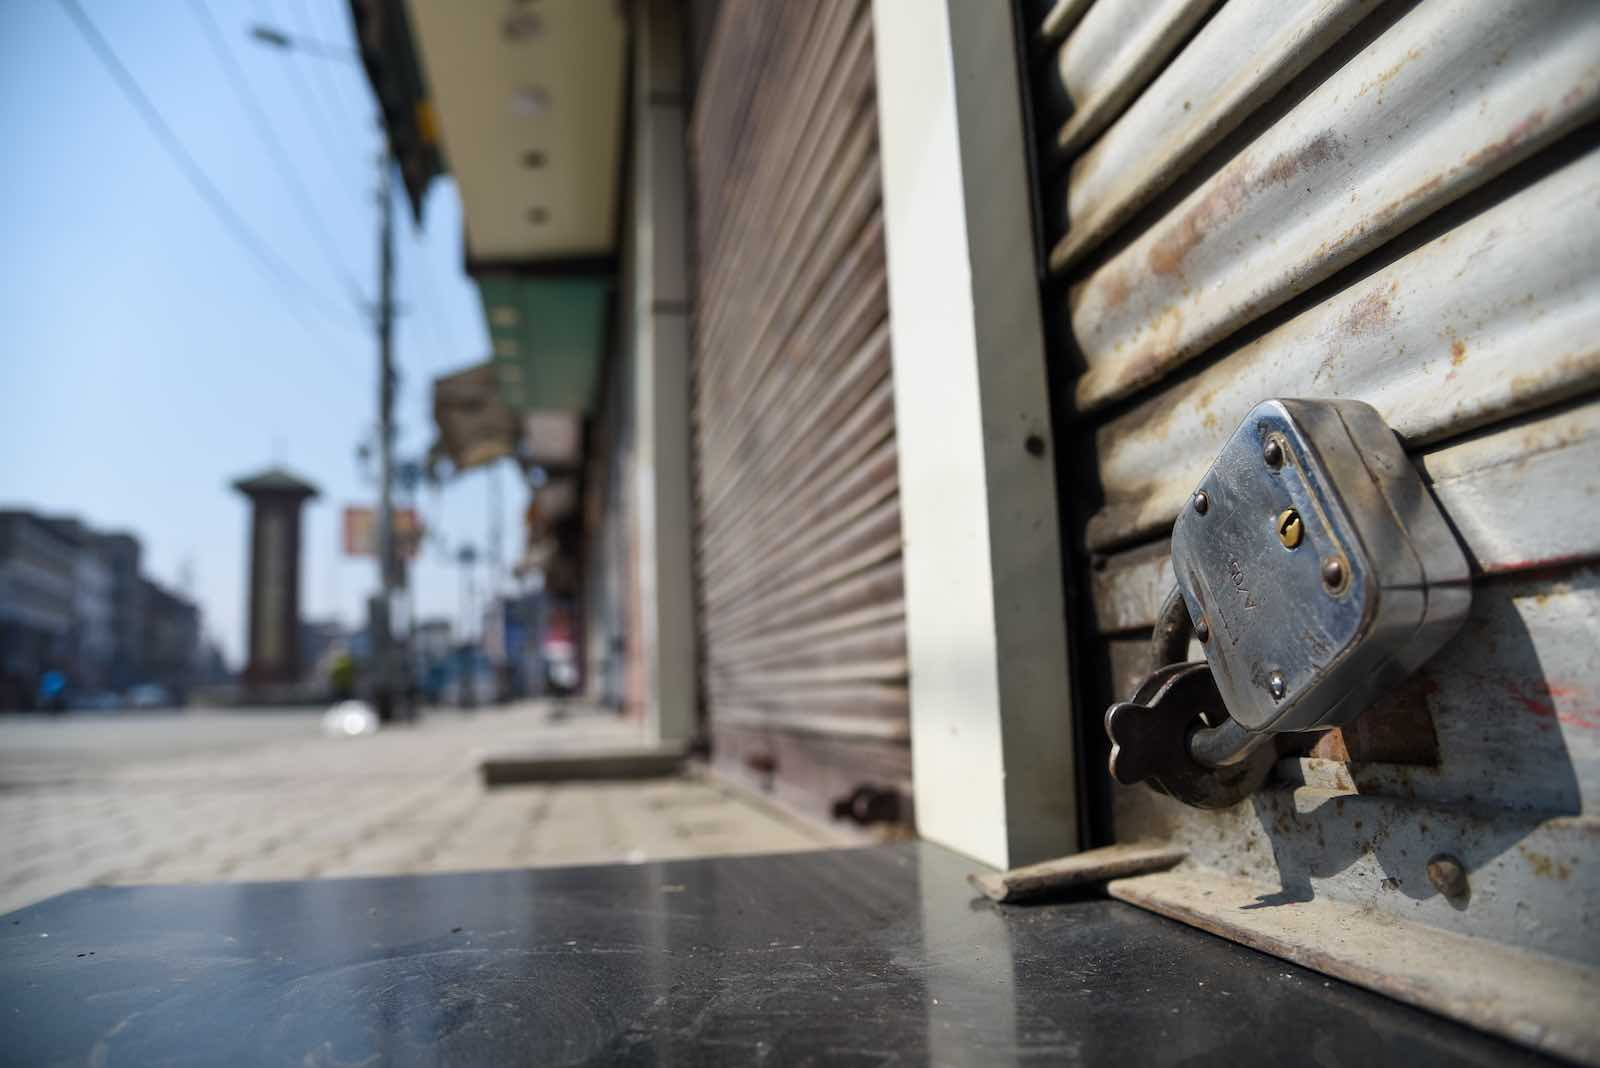 Closed shops in Srinagar during the lockdown (Photo: Idrees Abbas via Getty Images)